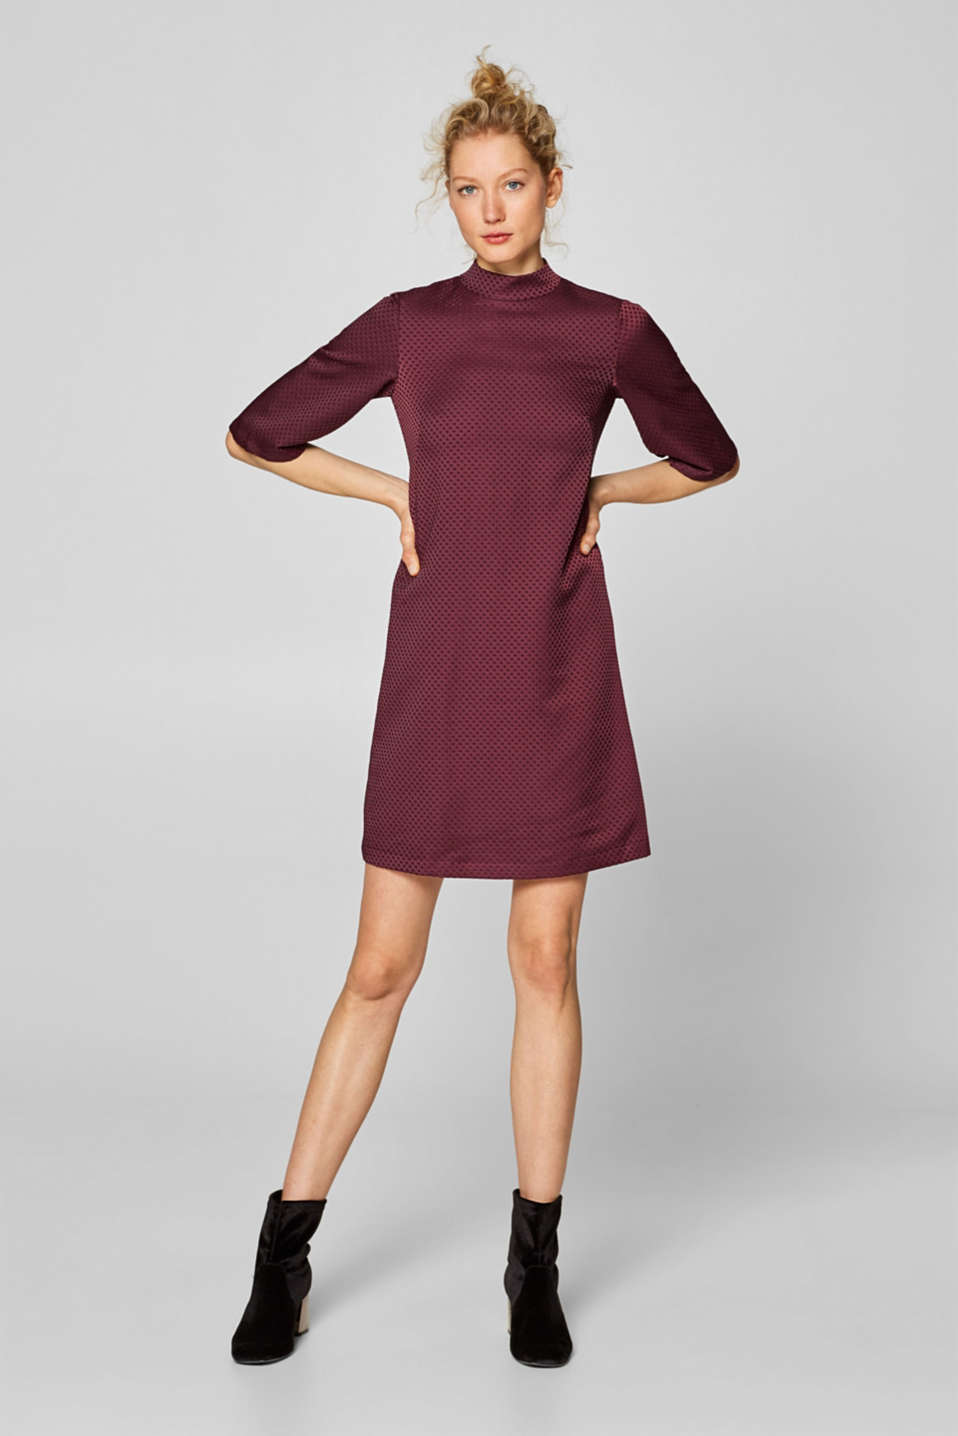 Esprit - Jacquard dress with a band collar